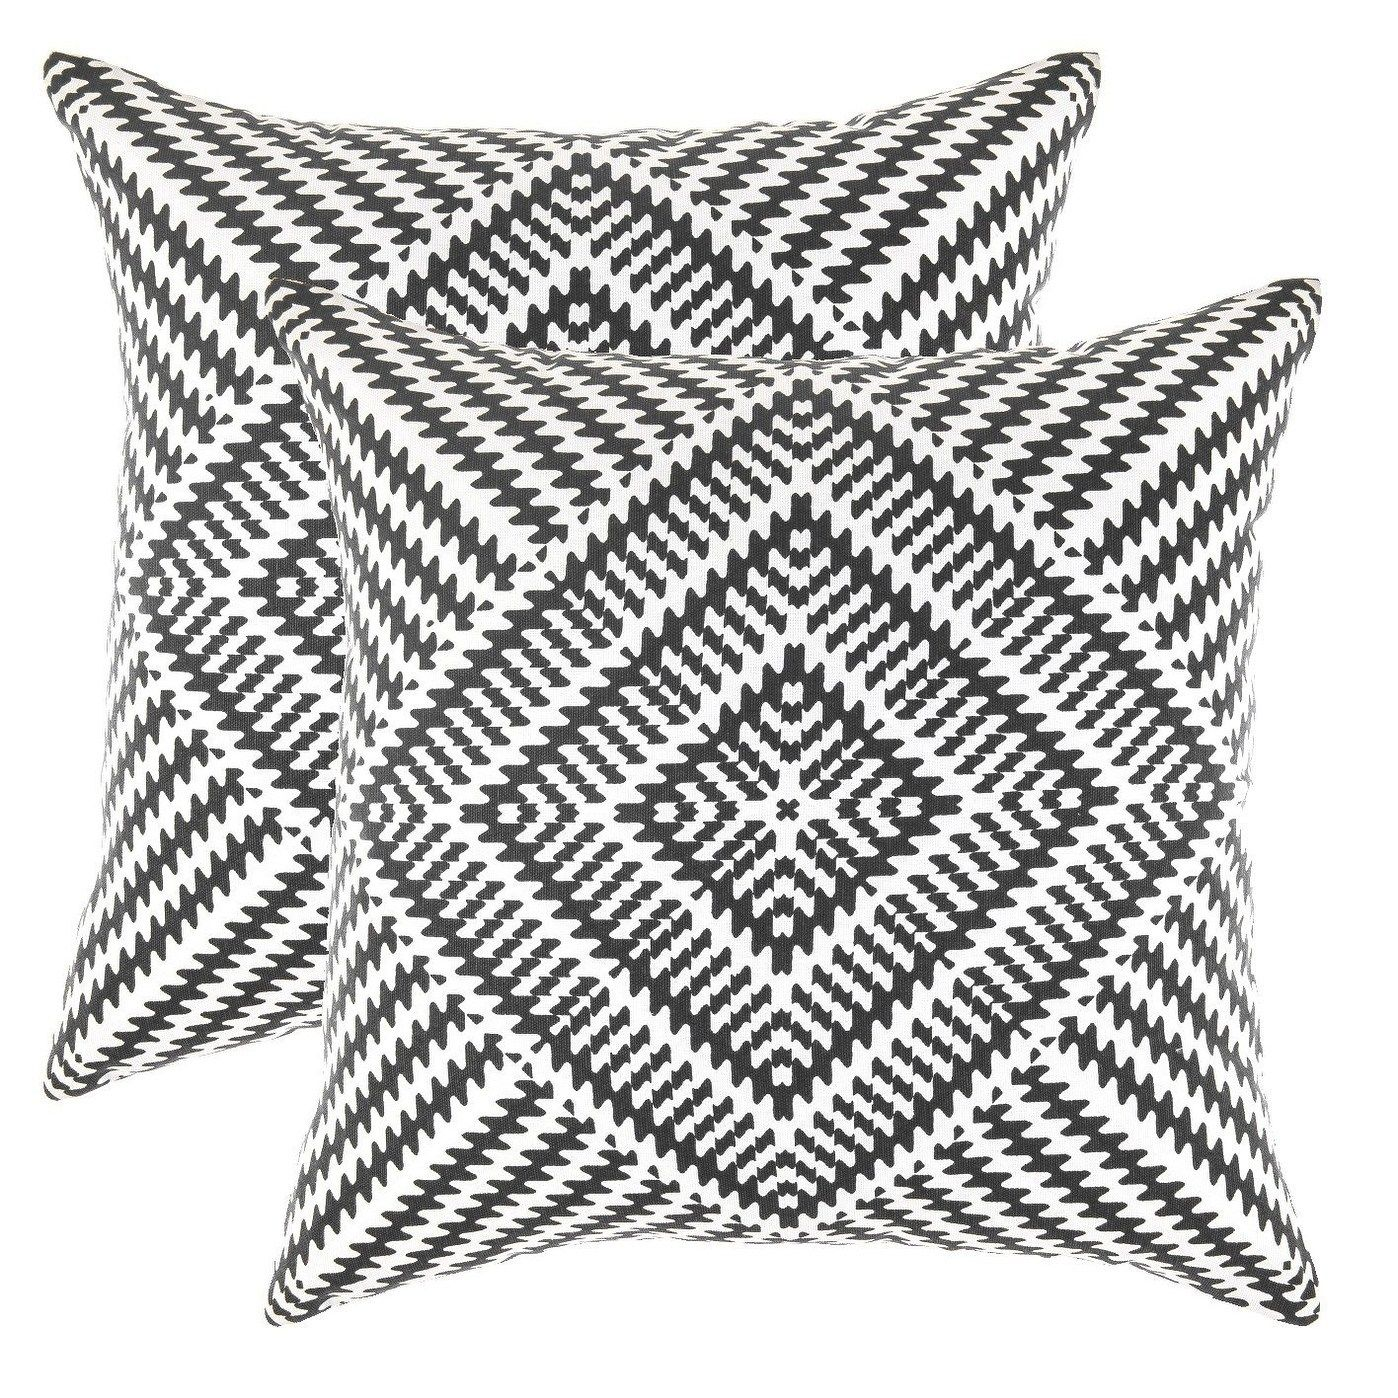 Strange Throw Pillow Covers Kaleidoscope Accent Decorative Caraccident5 Cool Chair Designs And Ideas Caraccident5Info